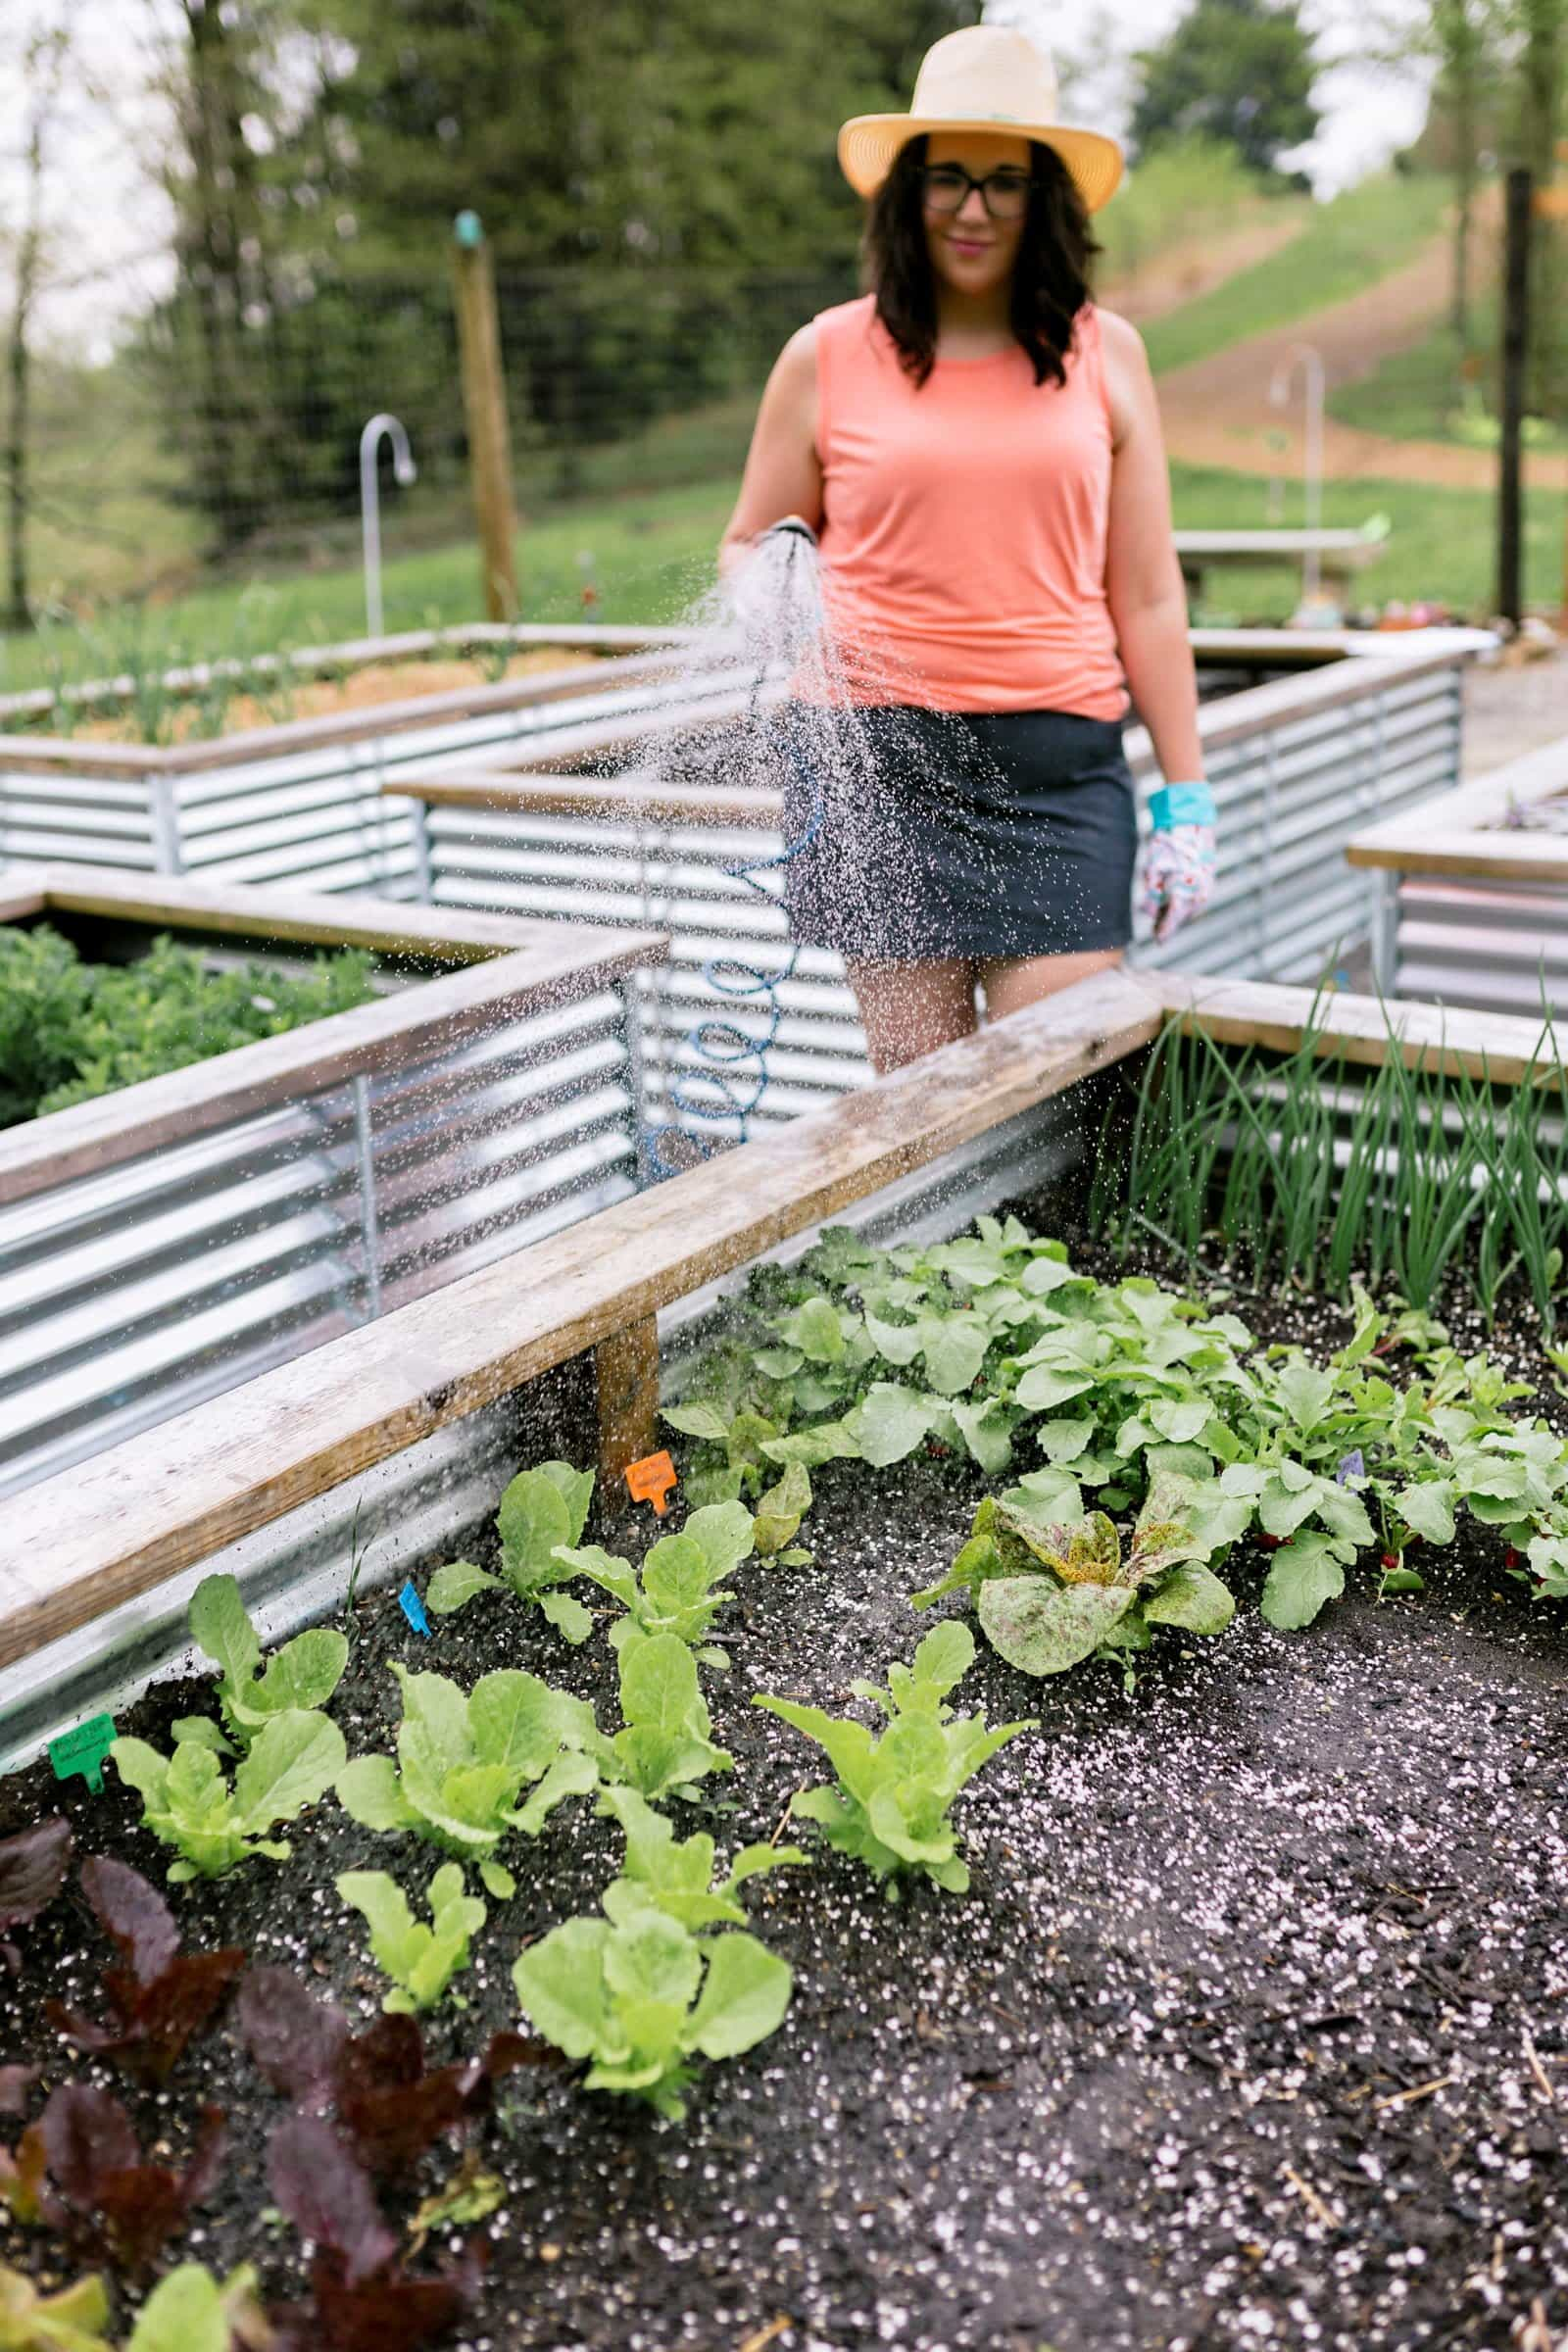 Woman in a coral shirt watering a raised garden bed